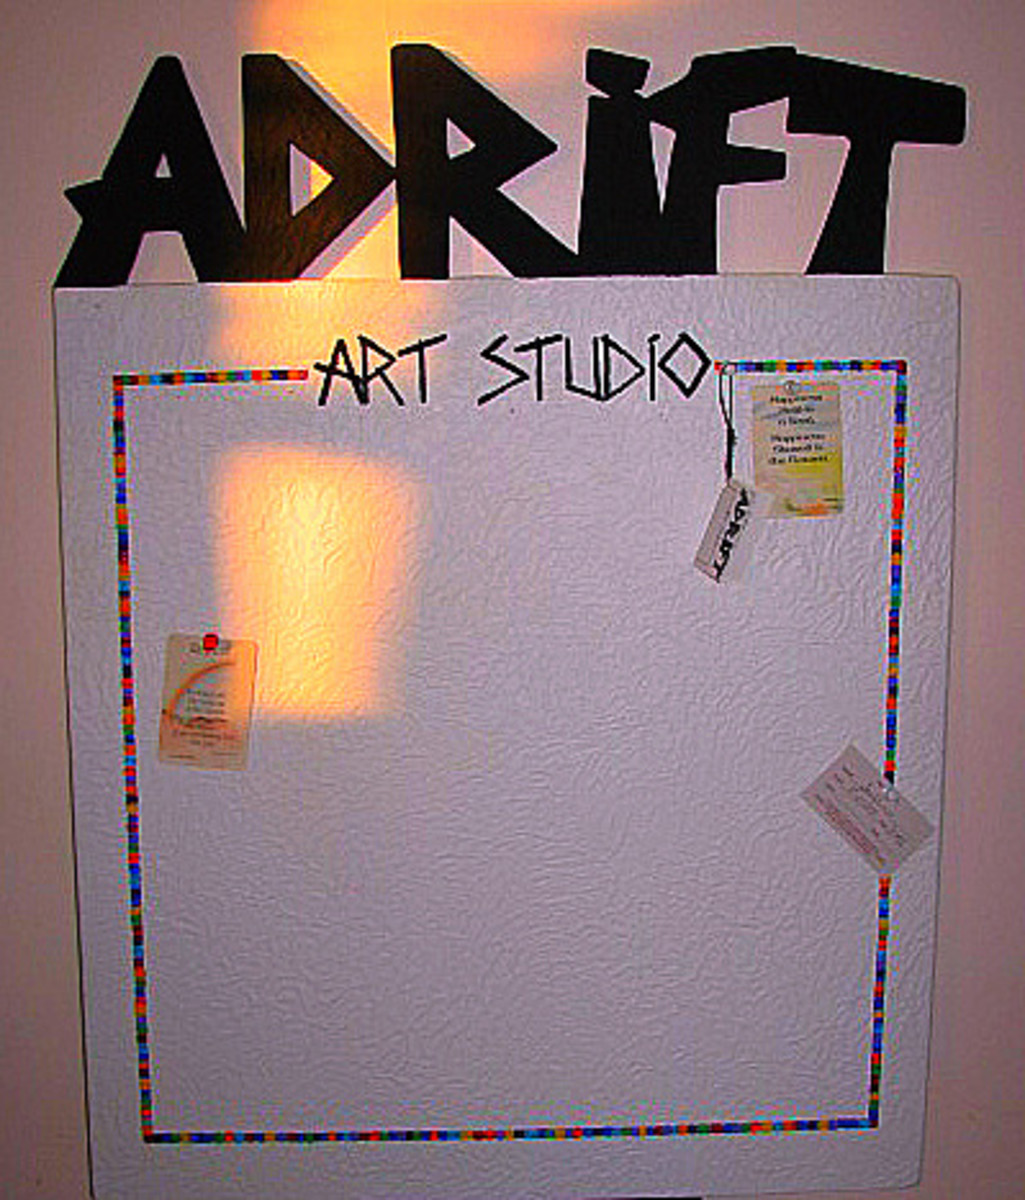 Doing what I do best came down to making bulletin boards, handcrafted jewelry and pyrographics on driftwood